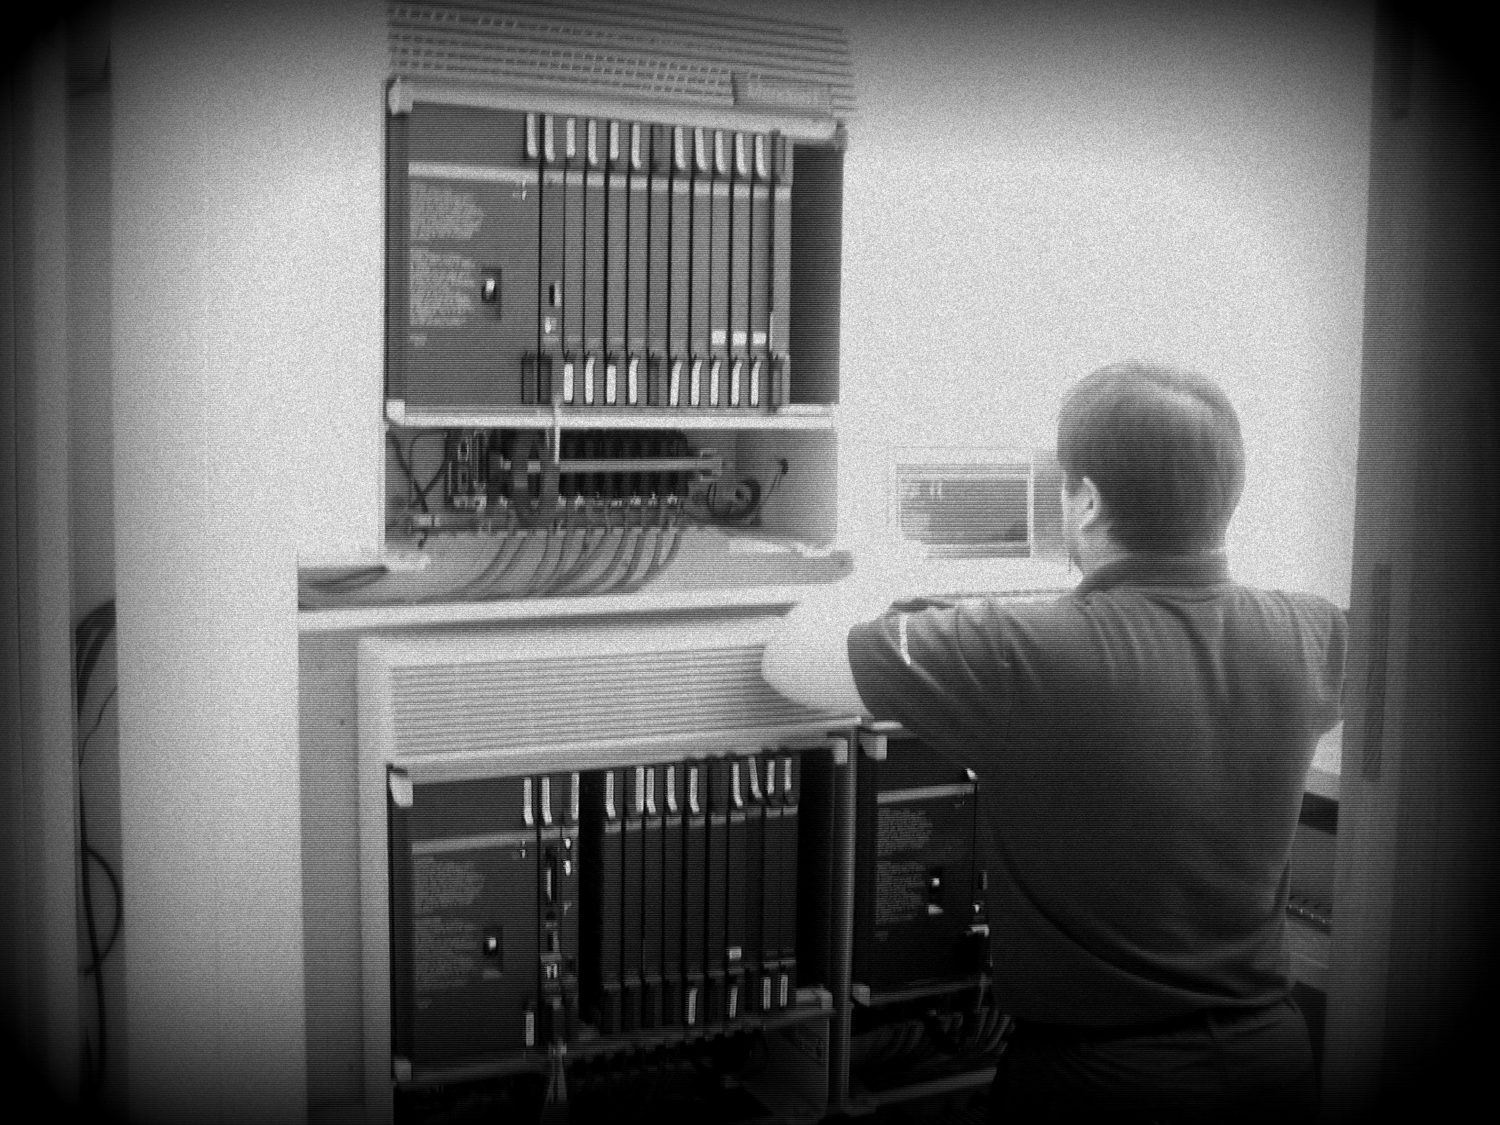 Telephone System Maintenance. Contract or Not?